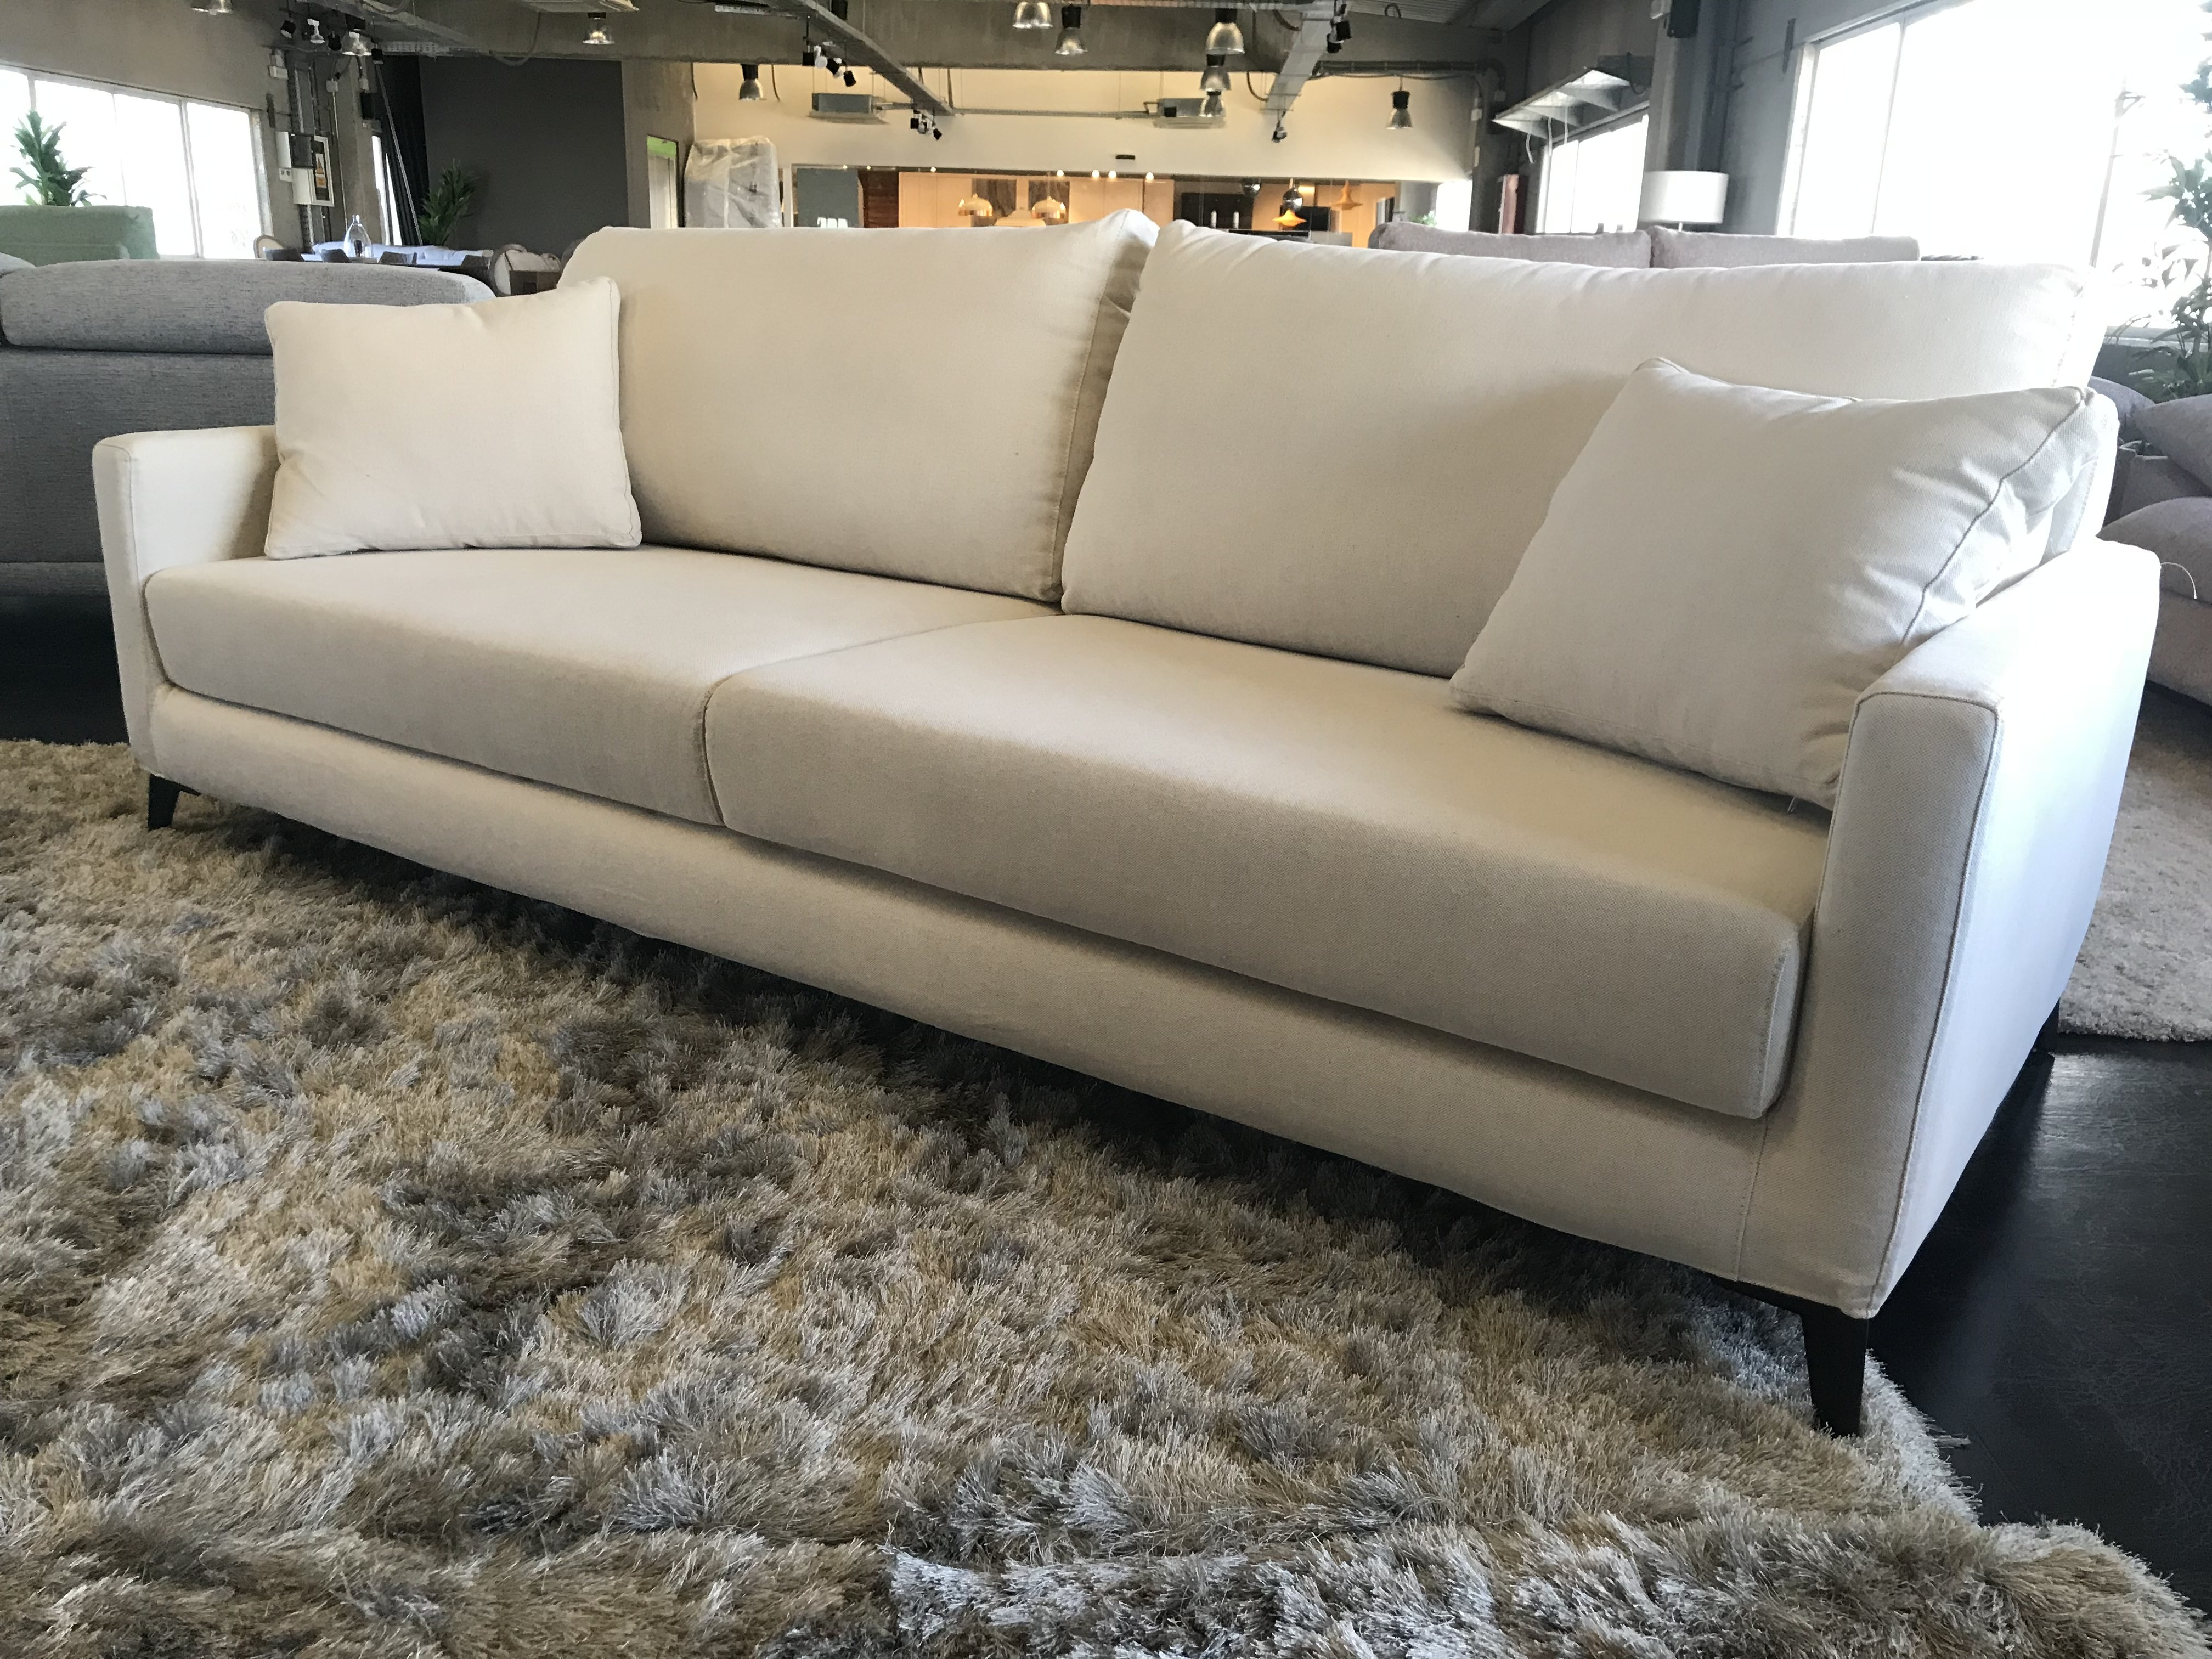 Outlet sofas Online Dddy Bello Liquidacion sofas Online Outlet the sofa Pany